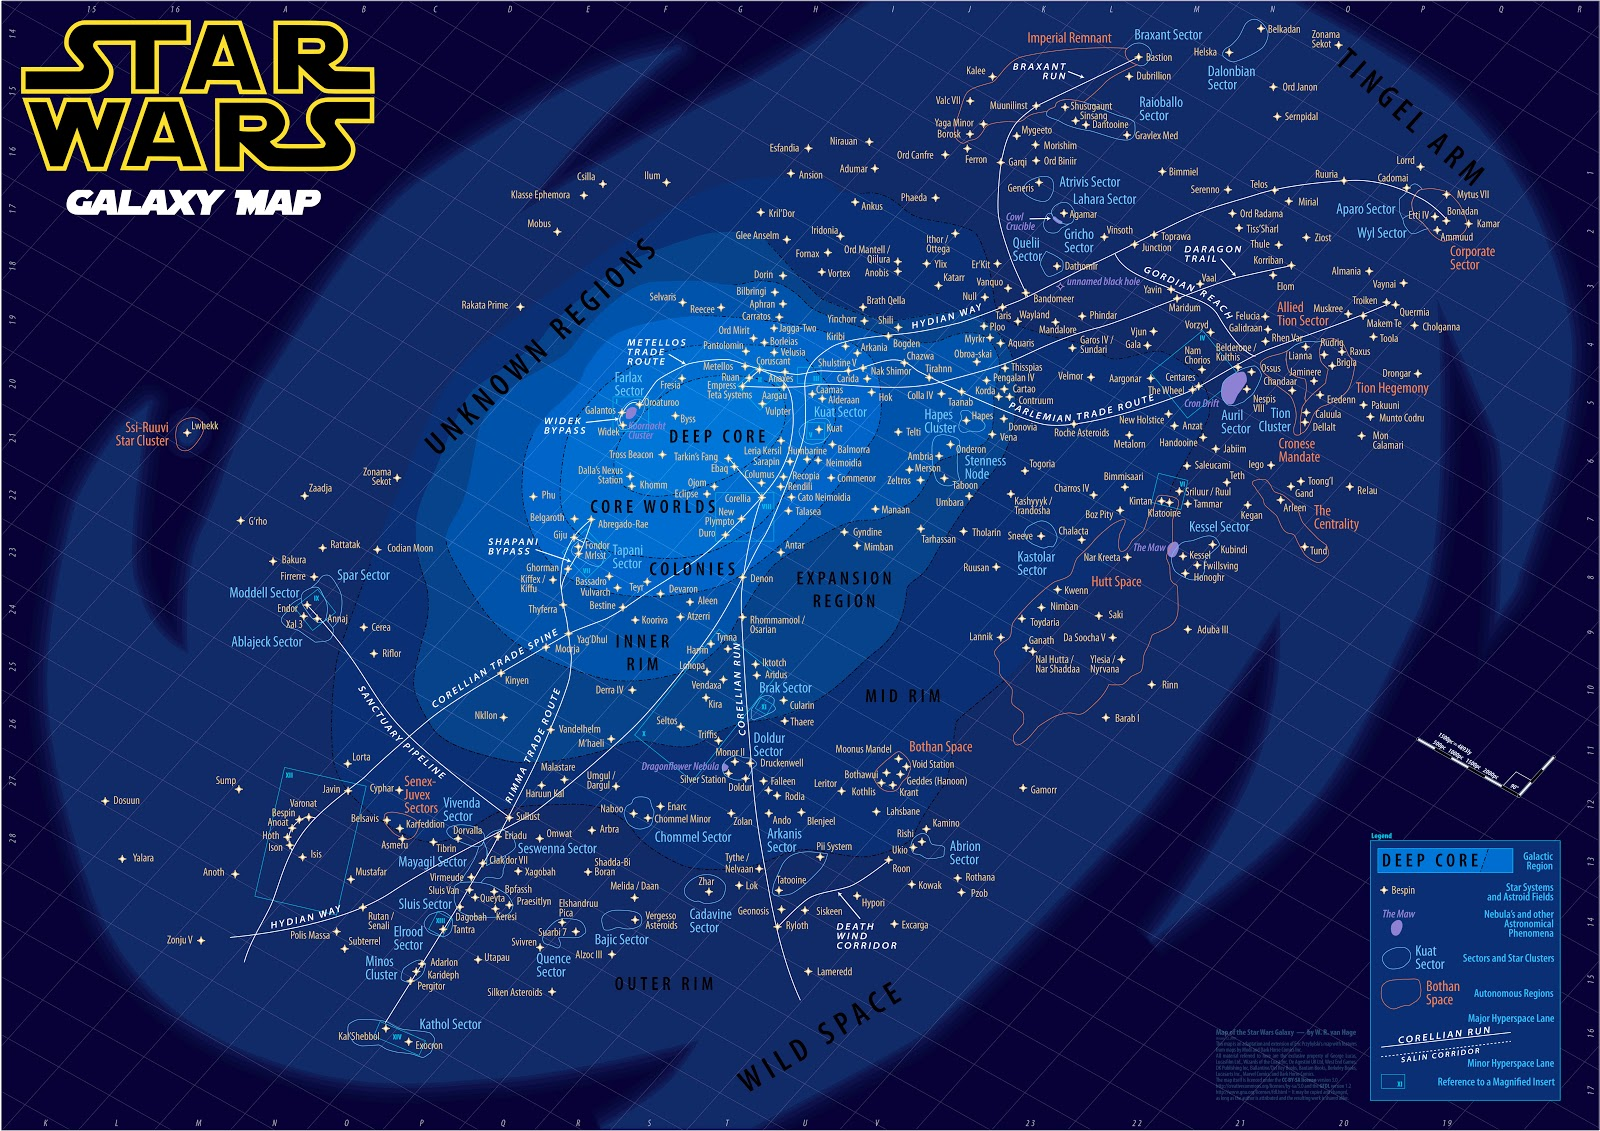 Cartographers' Guild on sun map, lightning map, milky way map, spectrum map, classic map, science map, astronomy map, world map, custom map, supreme map, universe map, venus map, solar system map, usa map, hotspot map, asteroid map, continents map, google map, constellation map, local supercluster map,